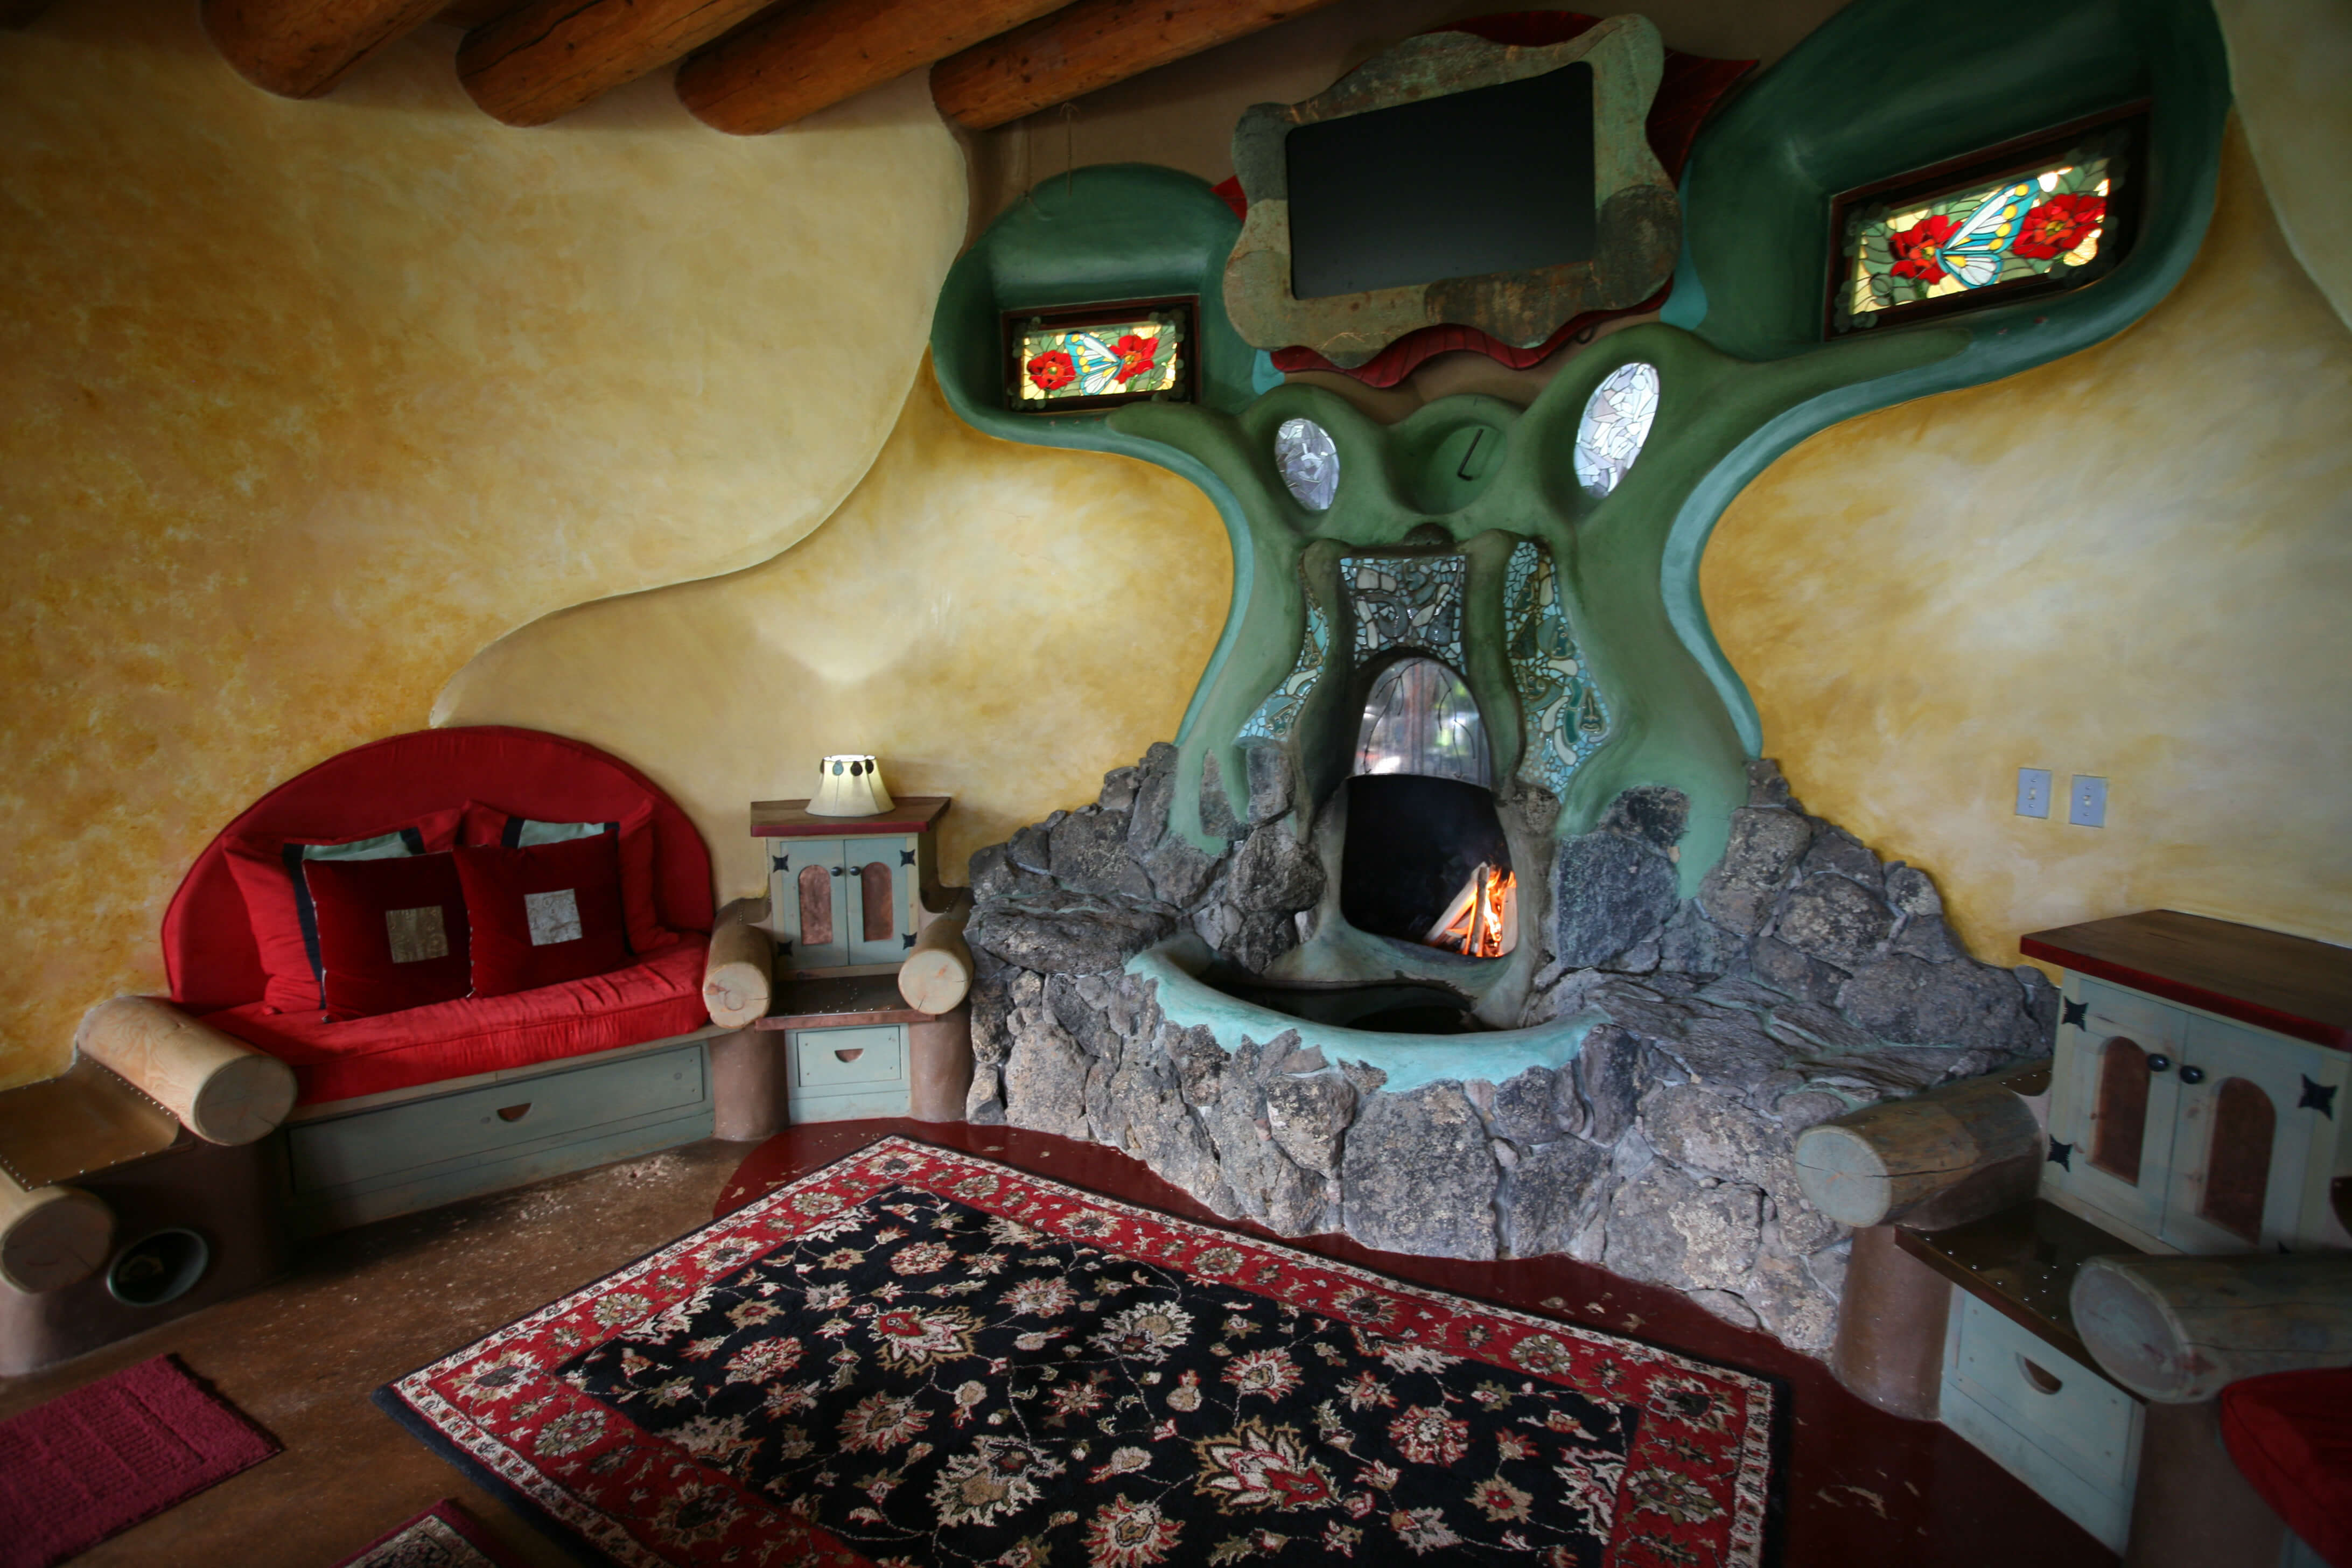 The fireplace in the Phoenix earthship, the house is valued at $1.5m.